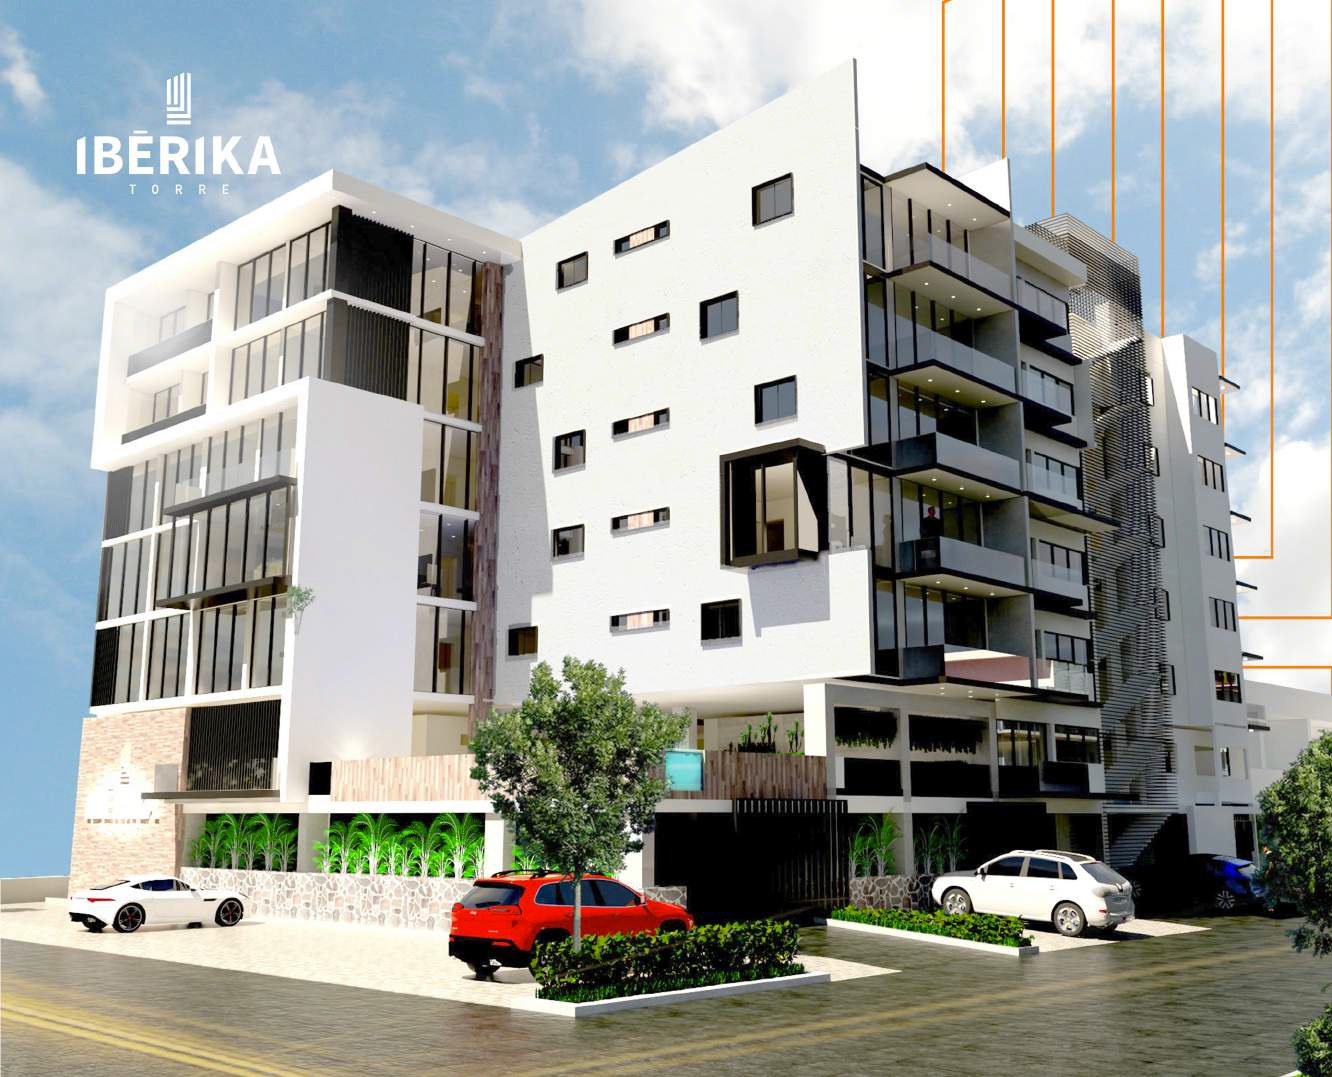 Condominium just a few blocks from the Malecon –  Iberika